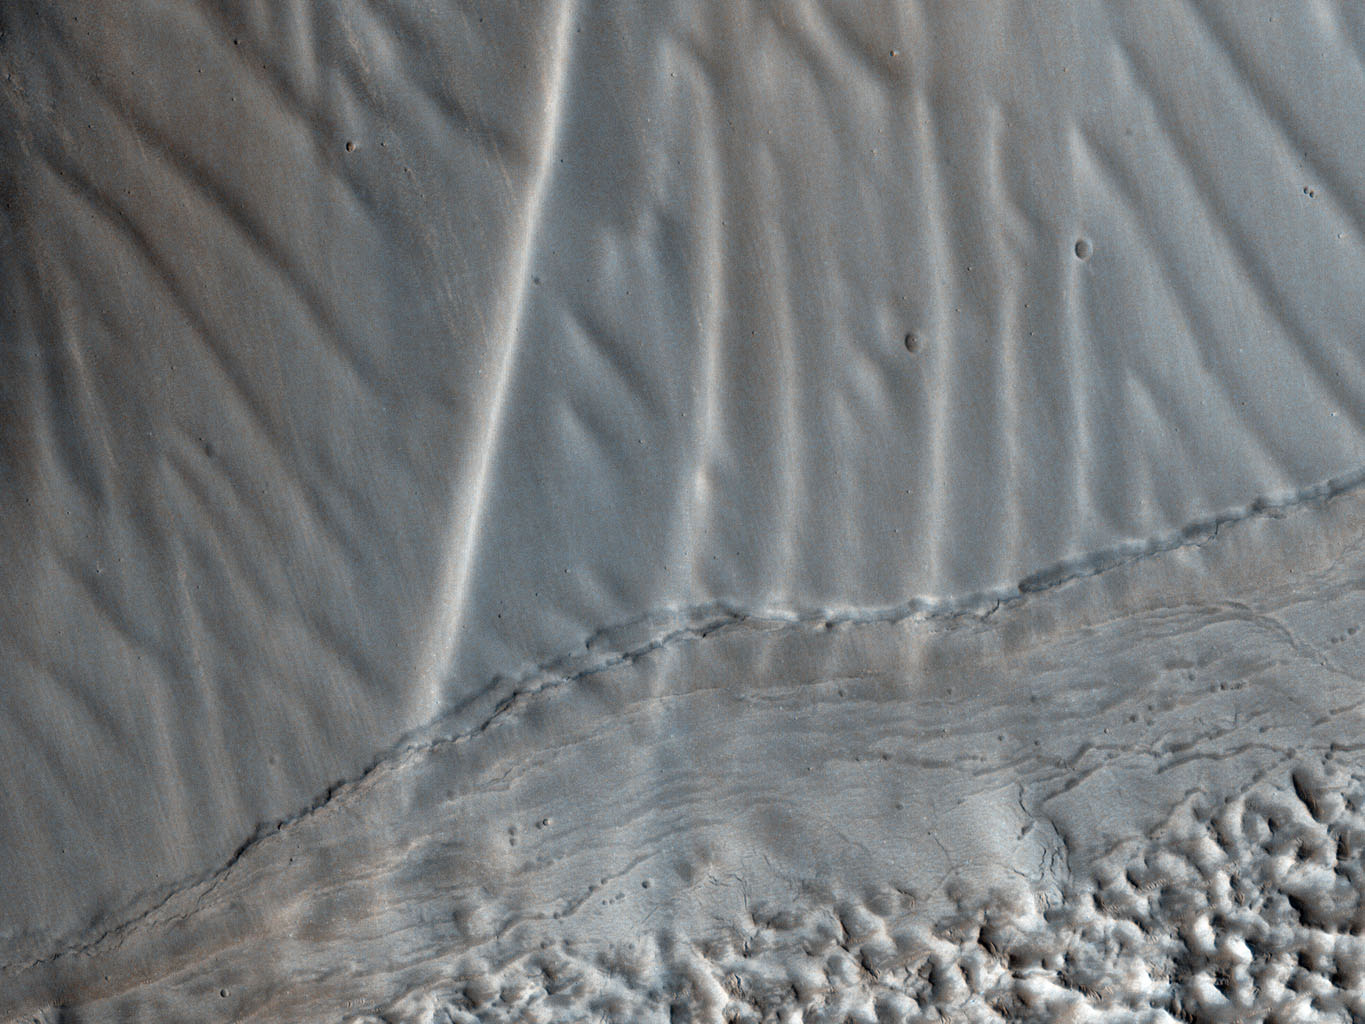 This observation from NASA's Mars Reconnaissance Orbiter shows a set of landforms that appears to form a nested 'chevron' pattern on a slope in Coloe Fossae. Interestingly, nearby surfaces on the same slope are all parallel.